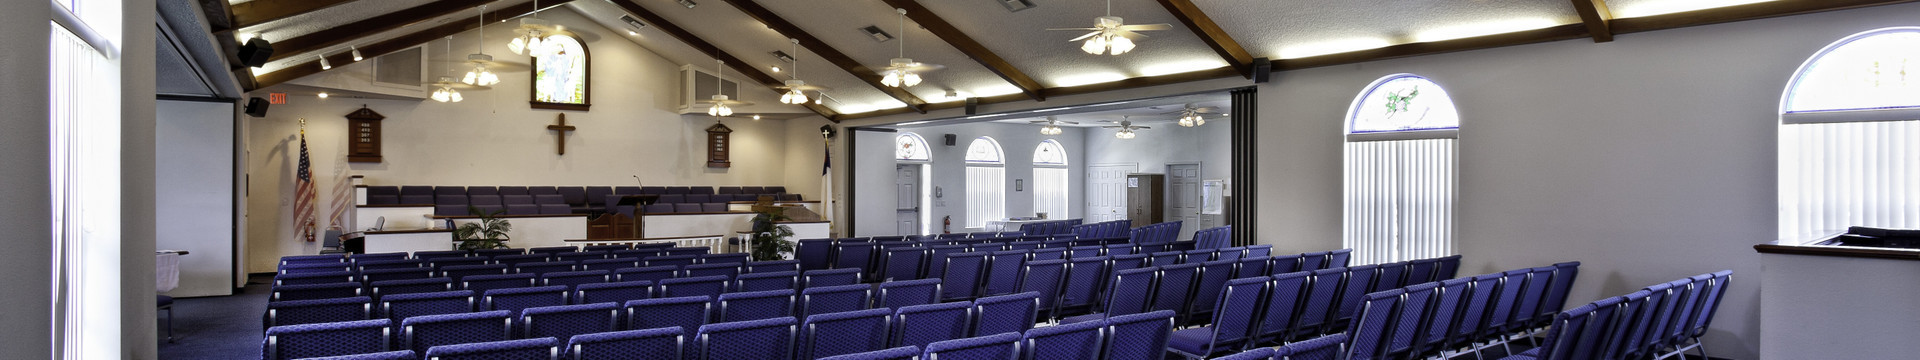 Church Retreats In Orlando - Inside of a Church